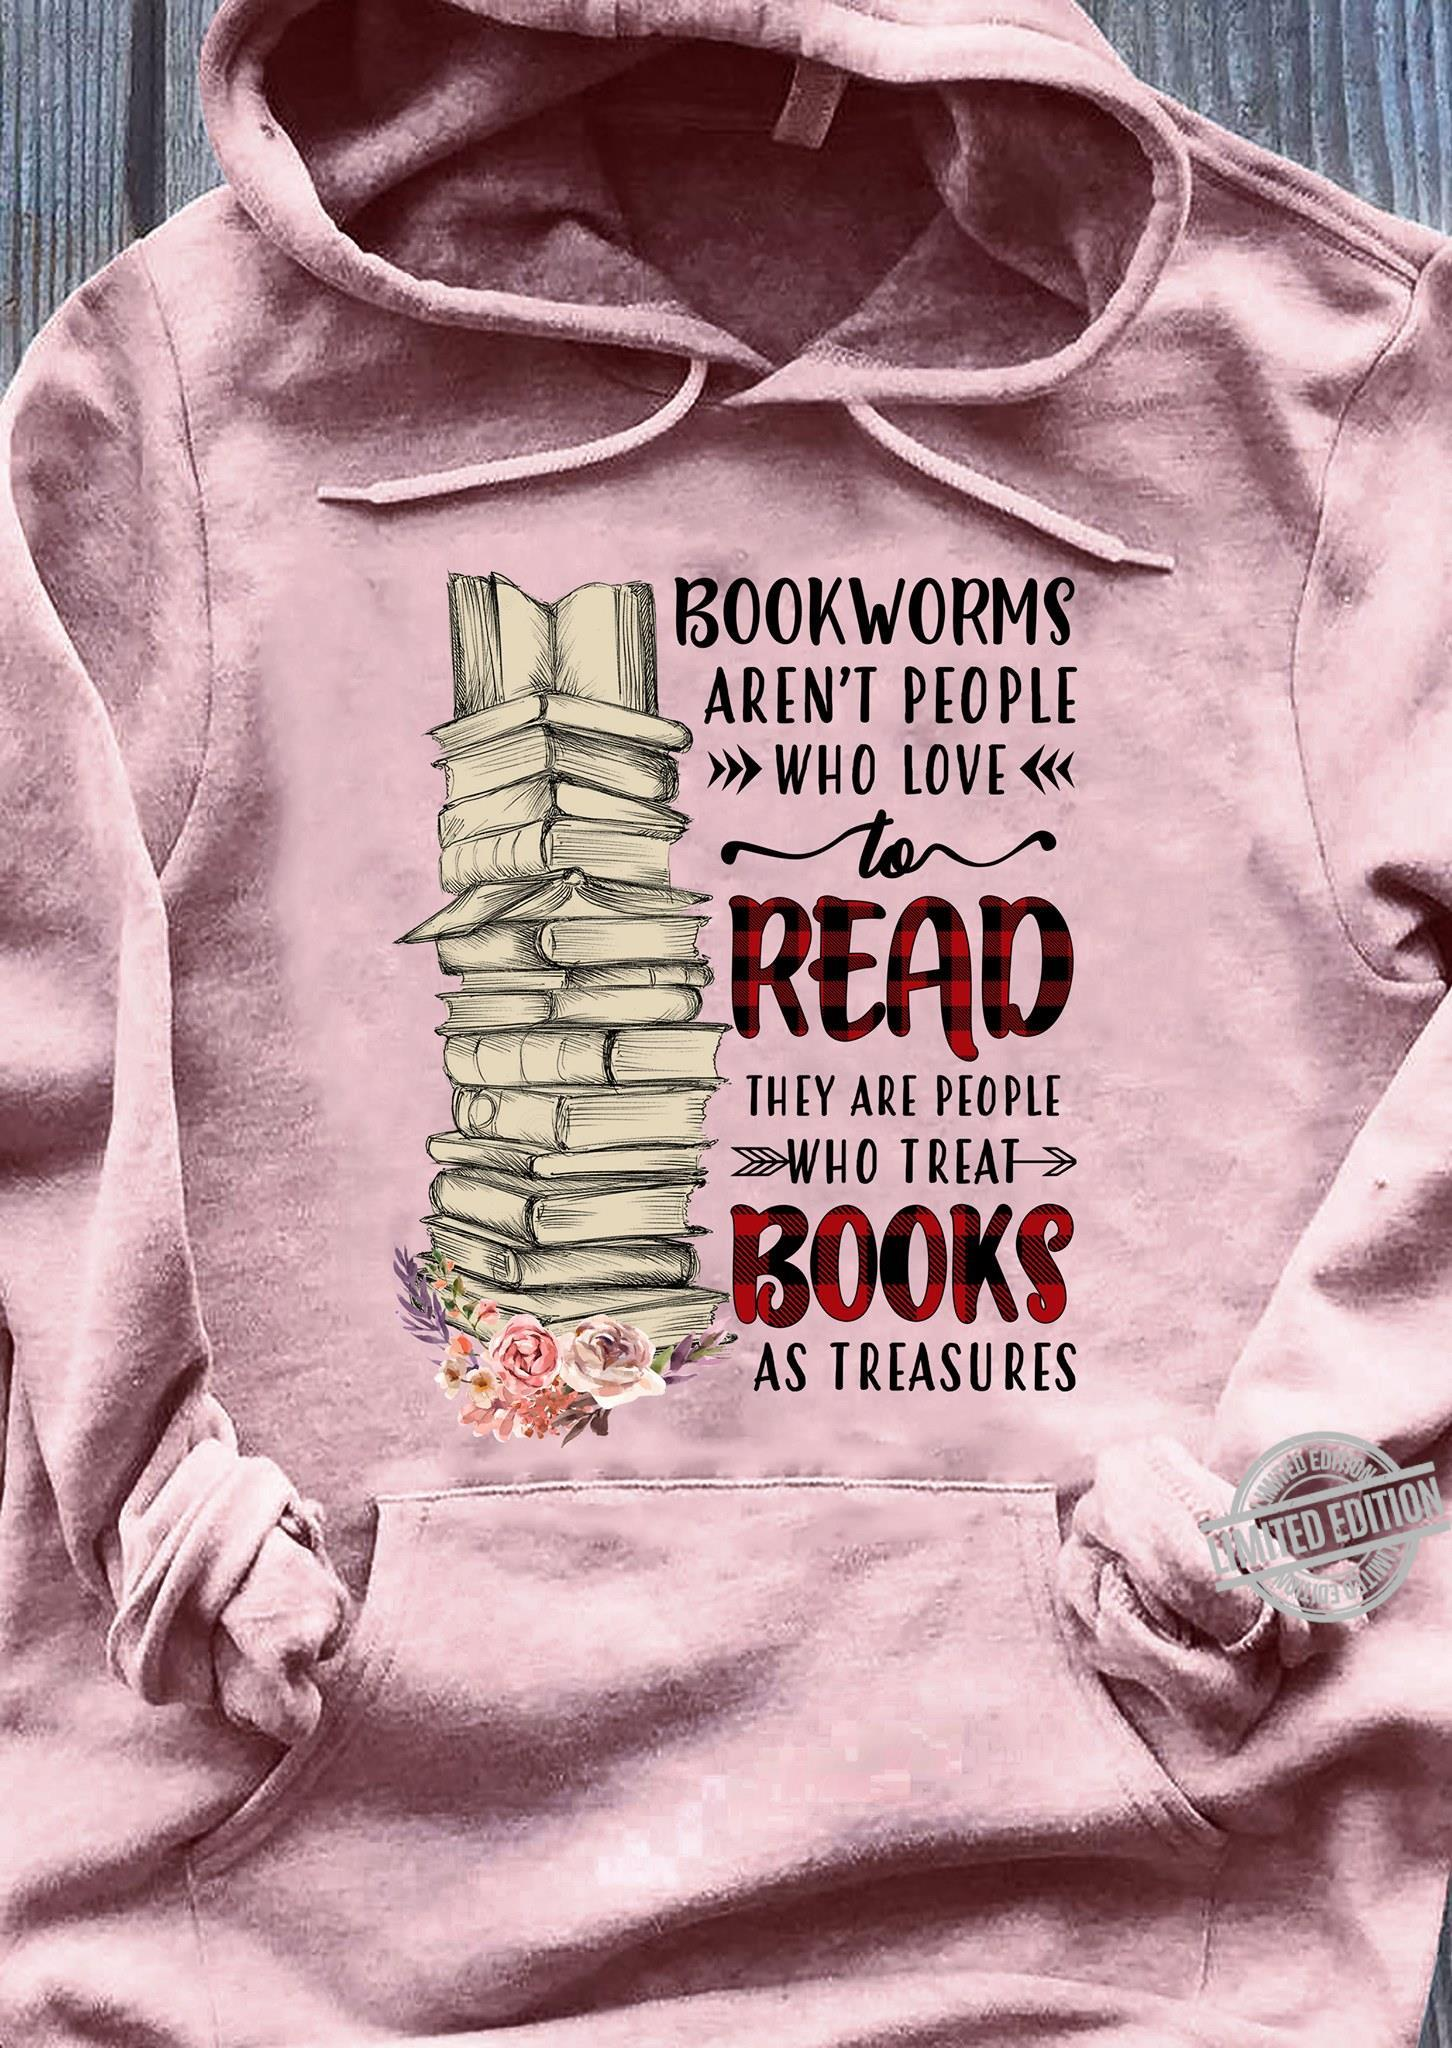 Bookworms Aren't People Who Love To Read They Are People Who Treat Books As Treasures Shirt